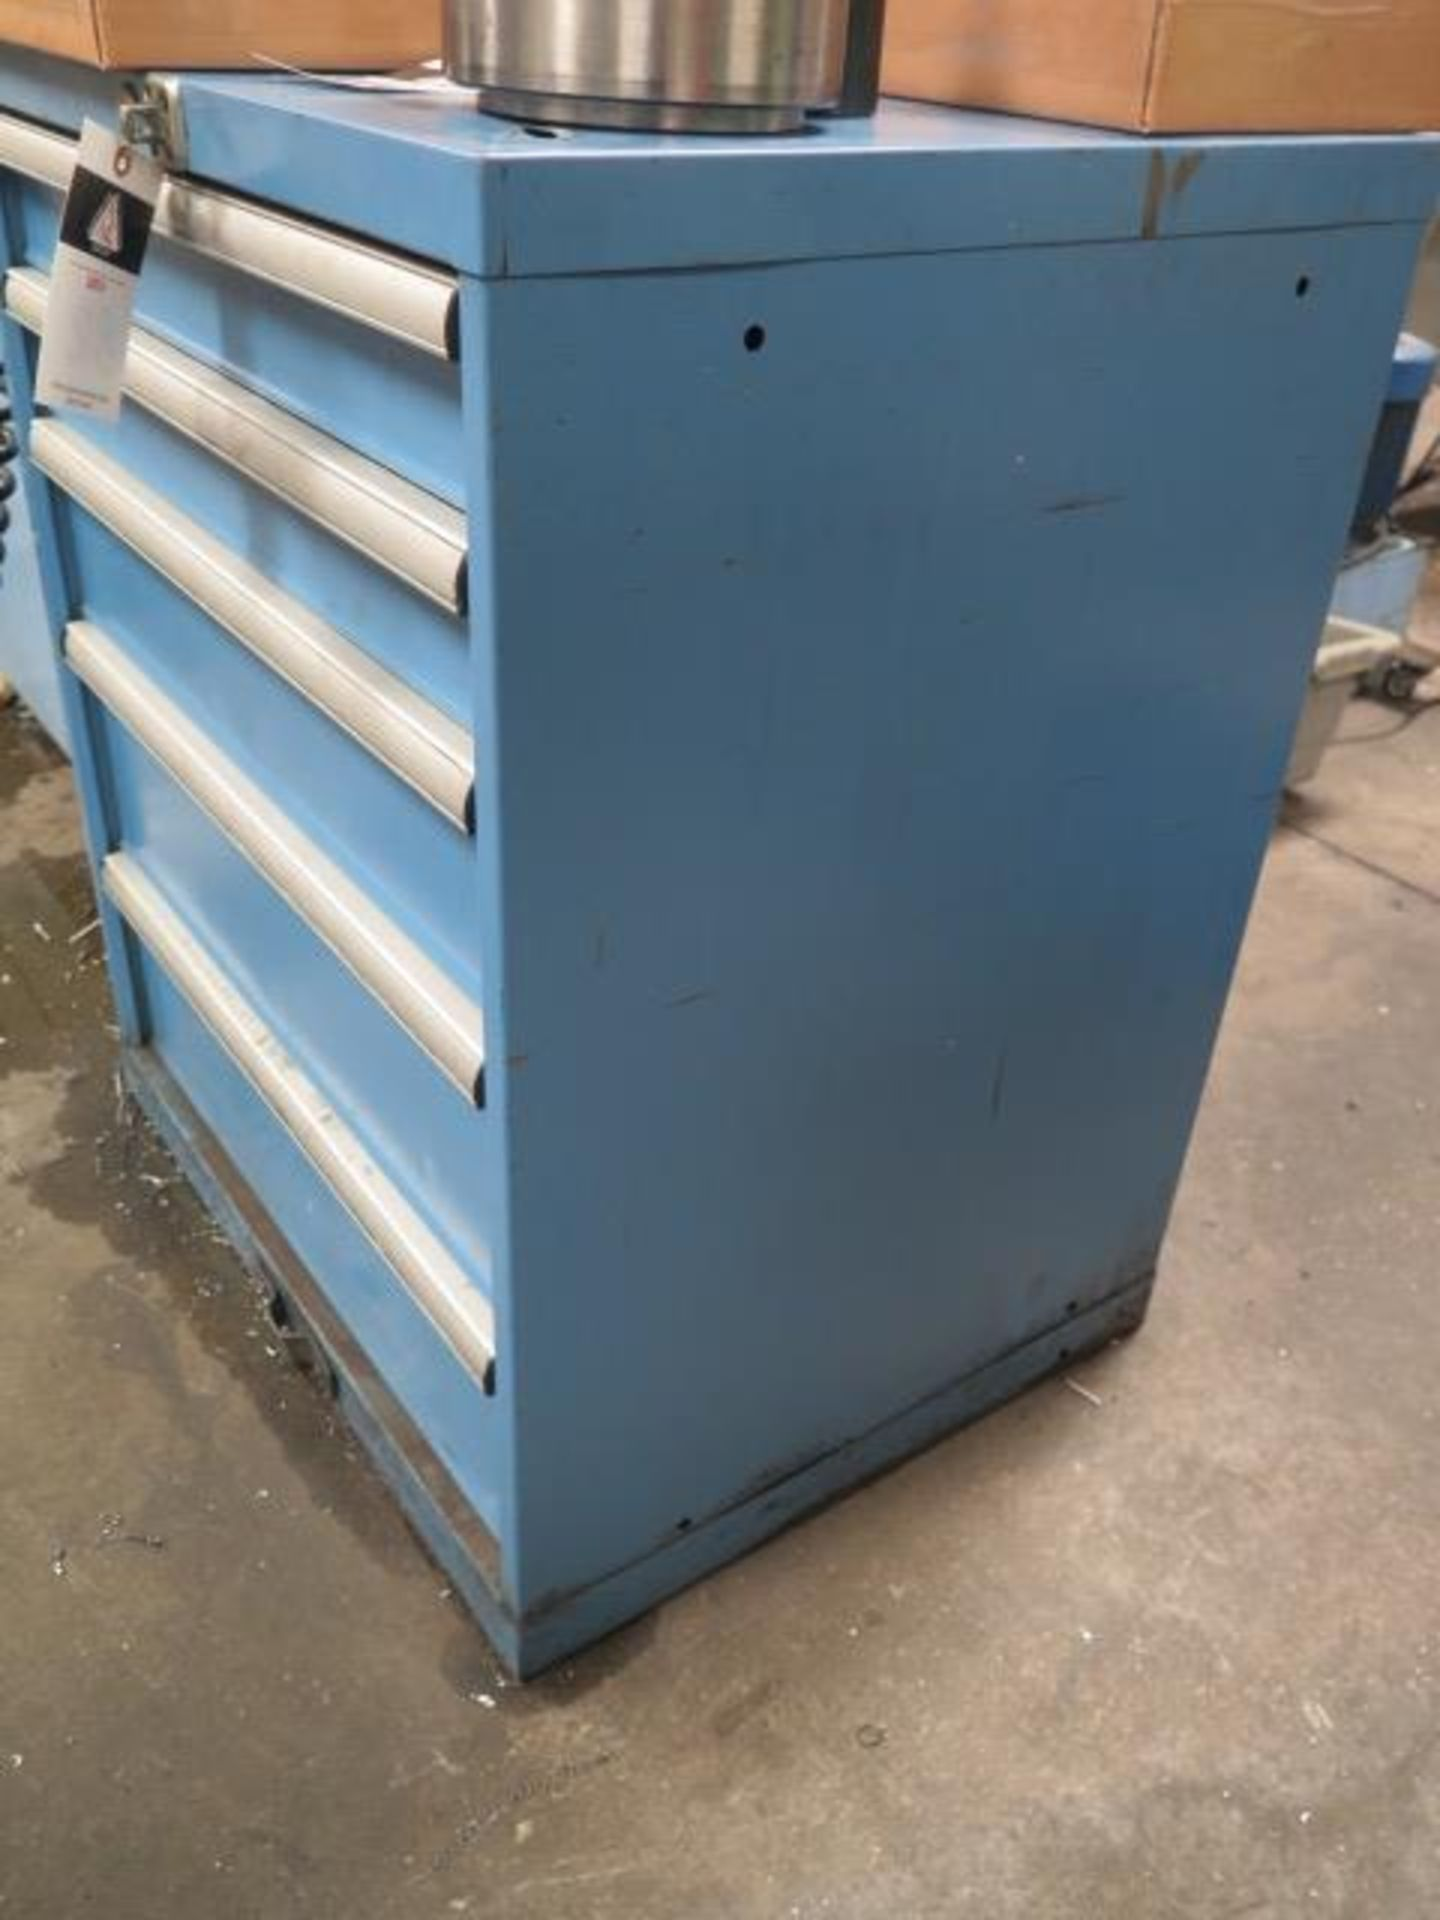 Lista 5-Drawer Tooling Cabinet w/ Chuck Jaws (SOLD AS-IS - NO WARRANTY) - Image 2 of 8